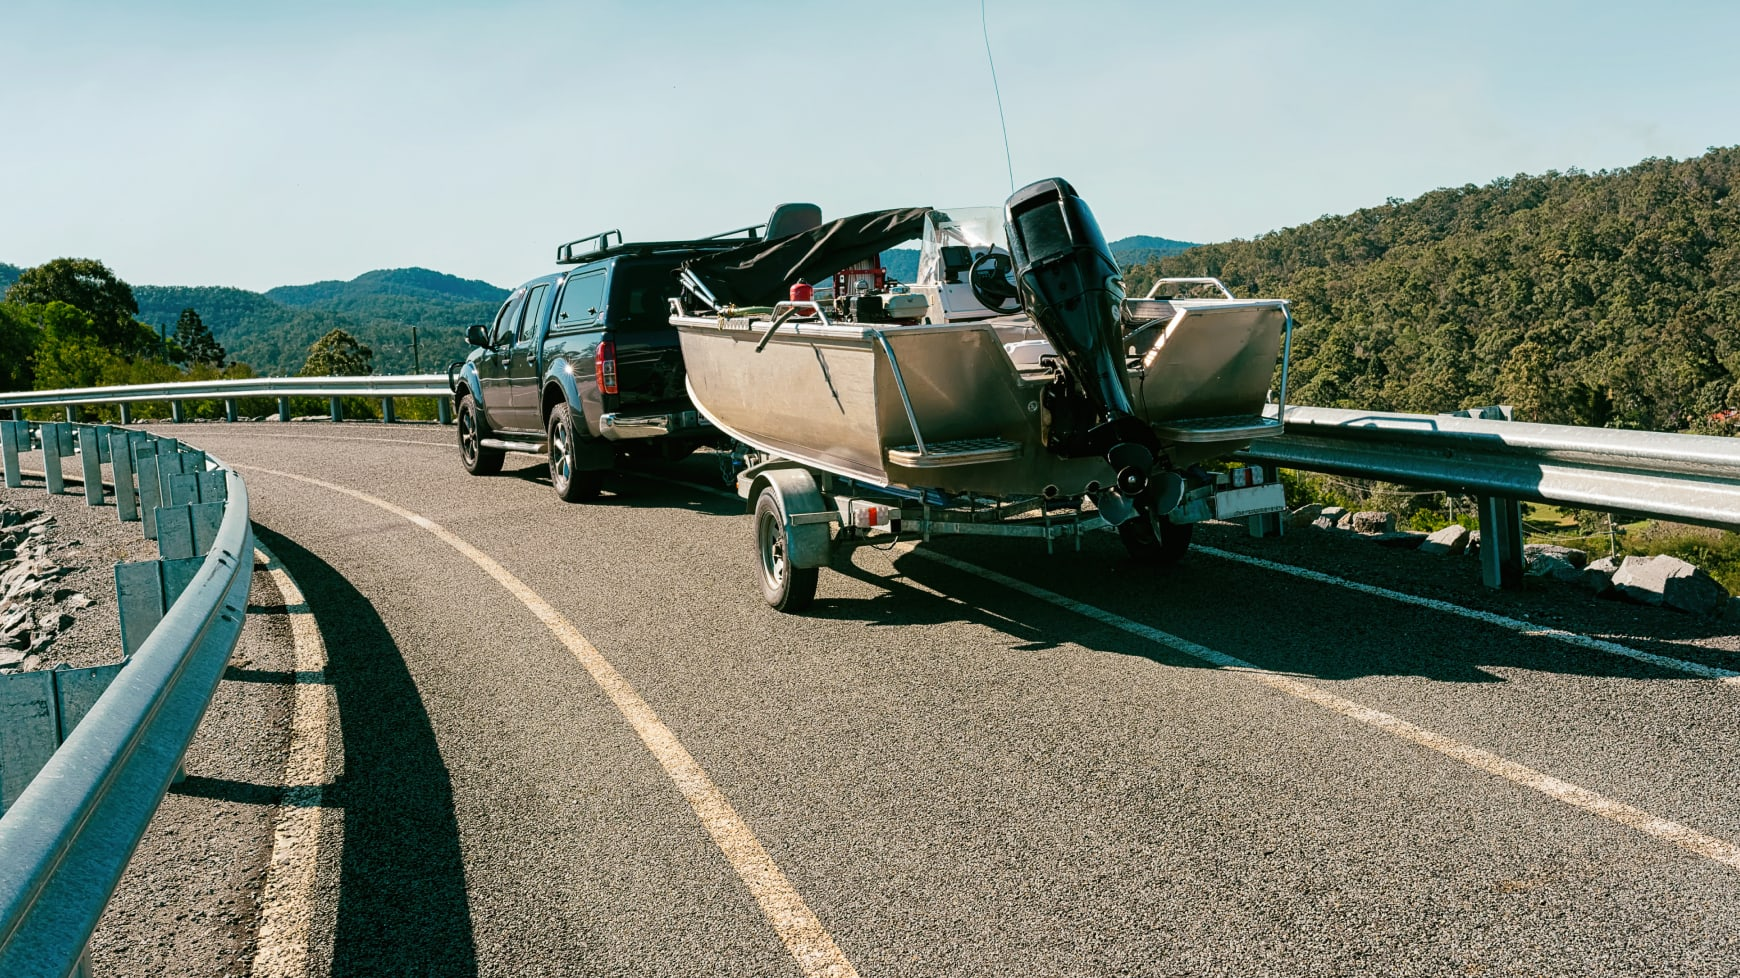 A Pickup Truck Towing a Boat on a Trailer